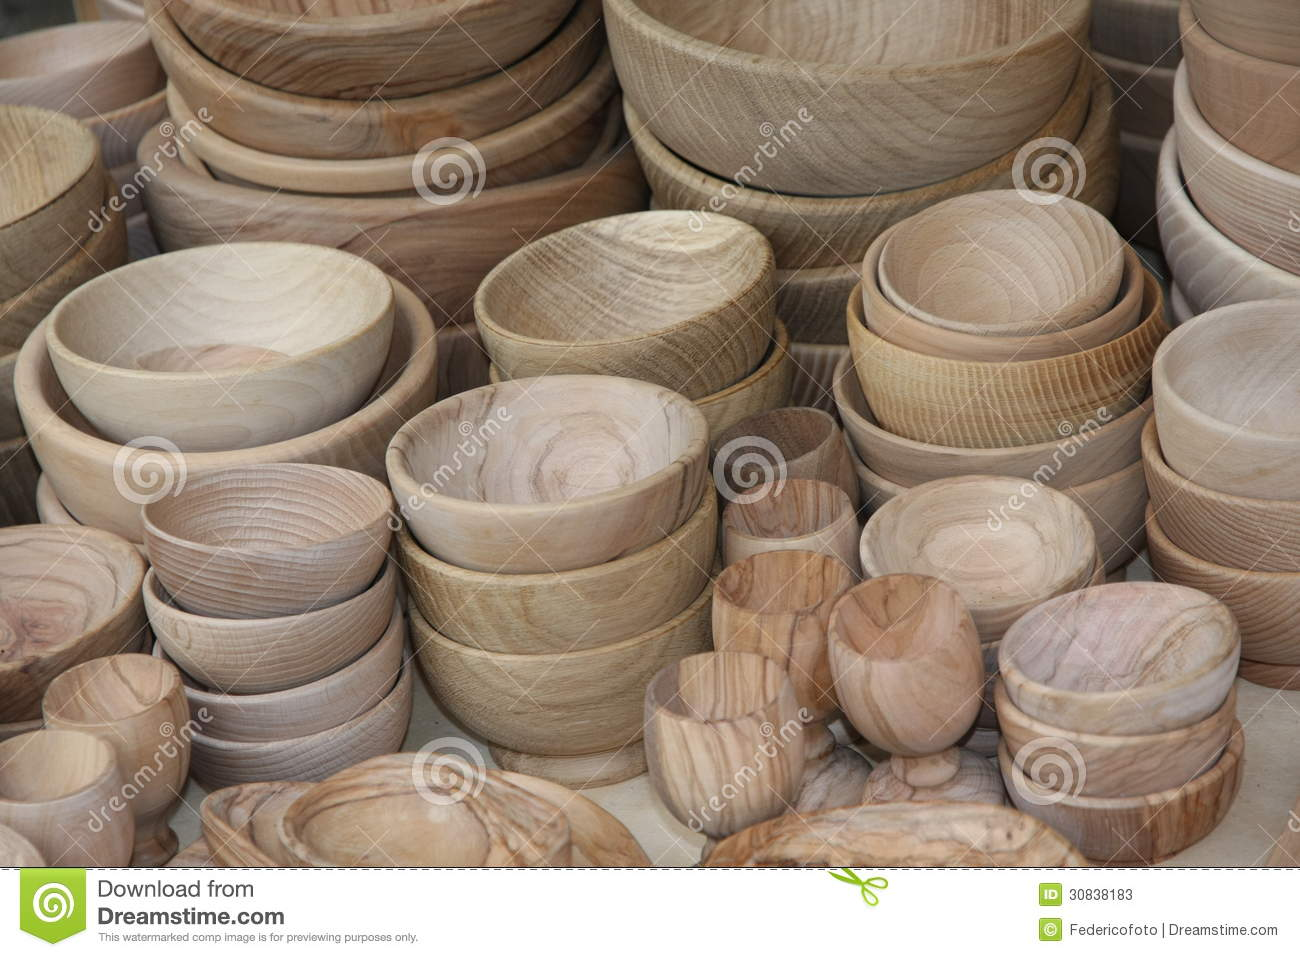 Wooden Bowls For Sale At The Local Flea Market Stock Image Image Of Made Container 30838183